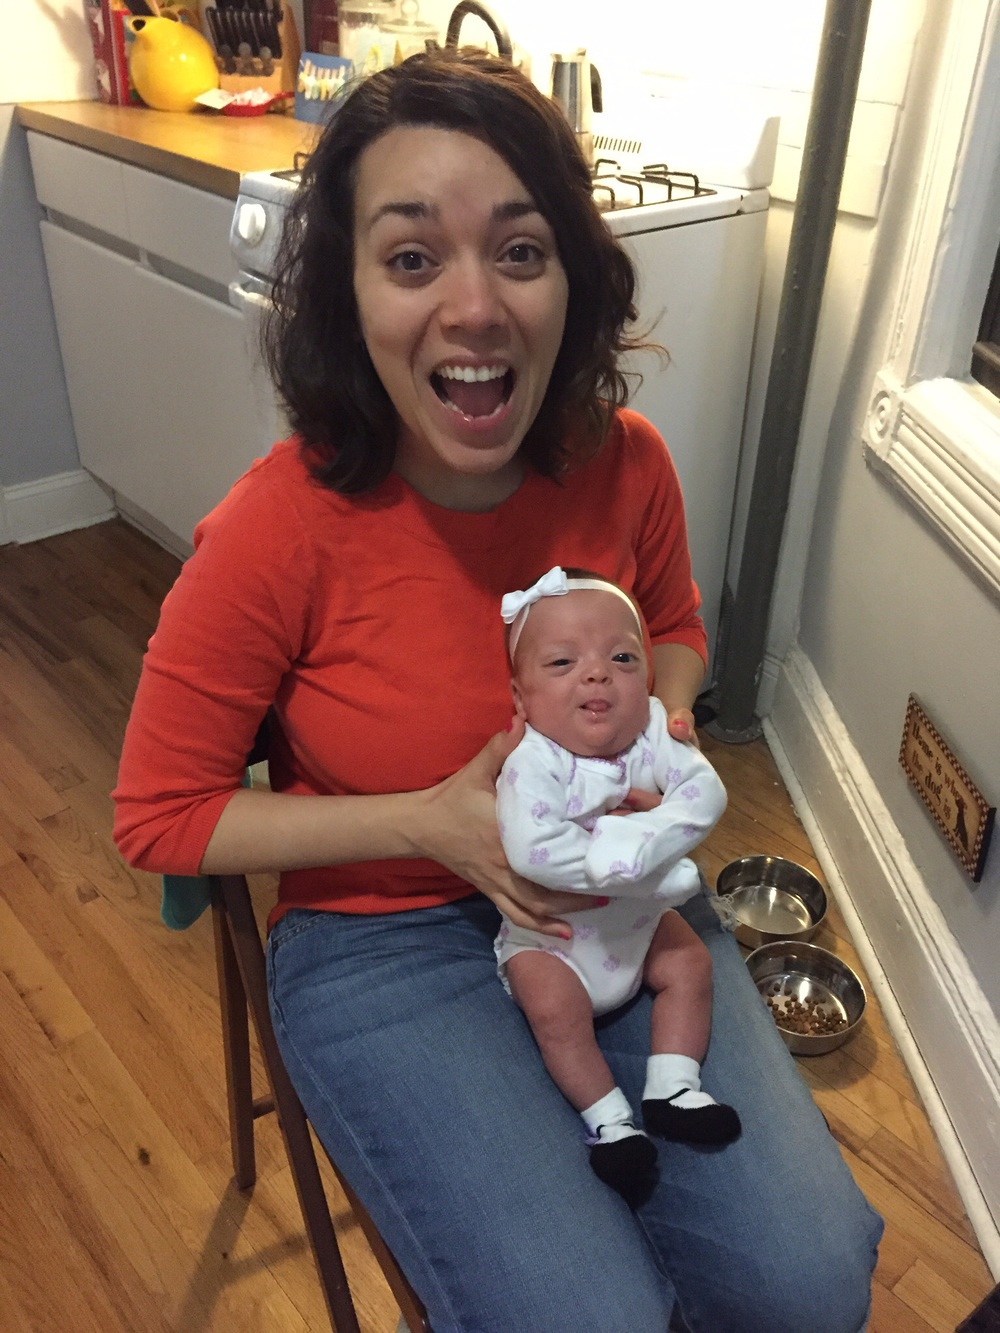 Mommy and Lucie love making silly faces!